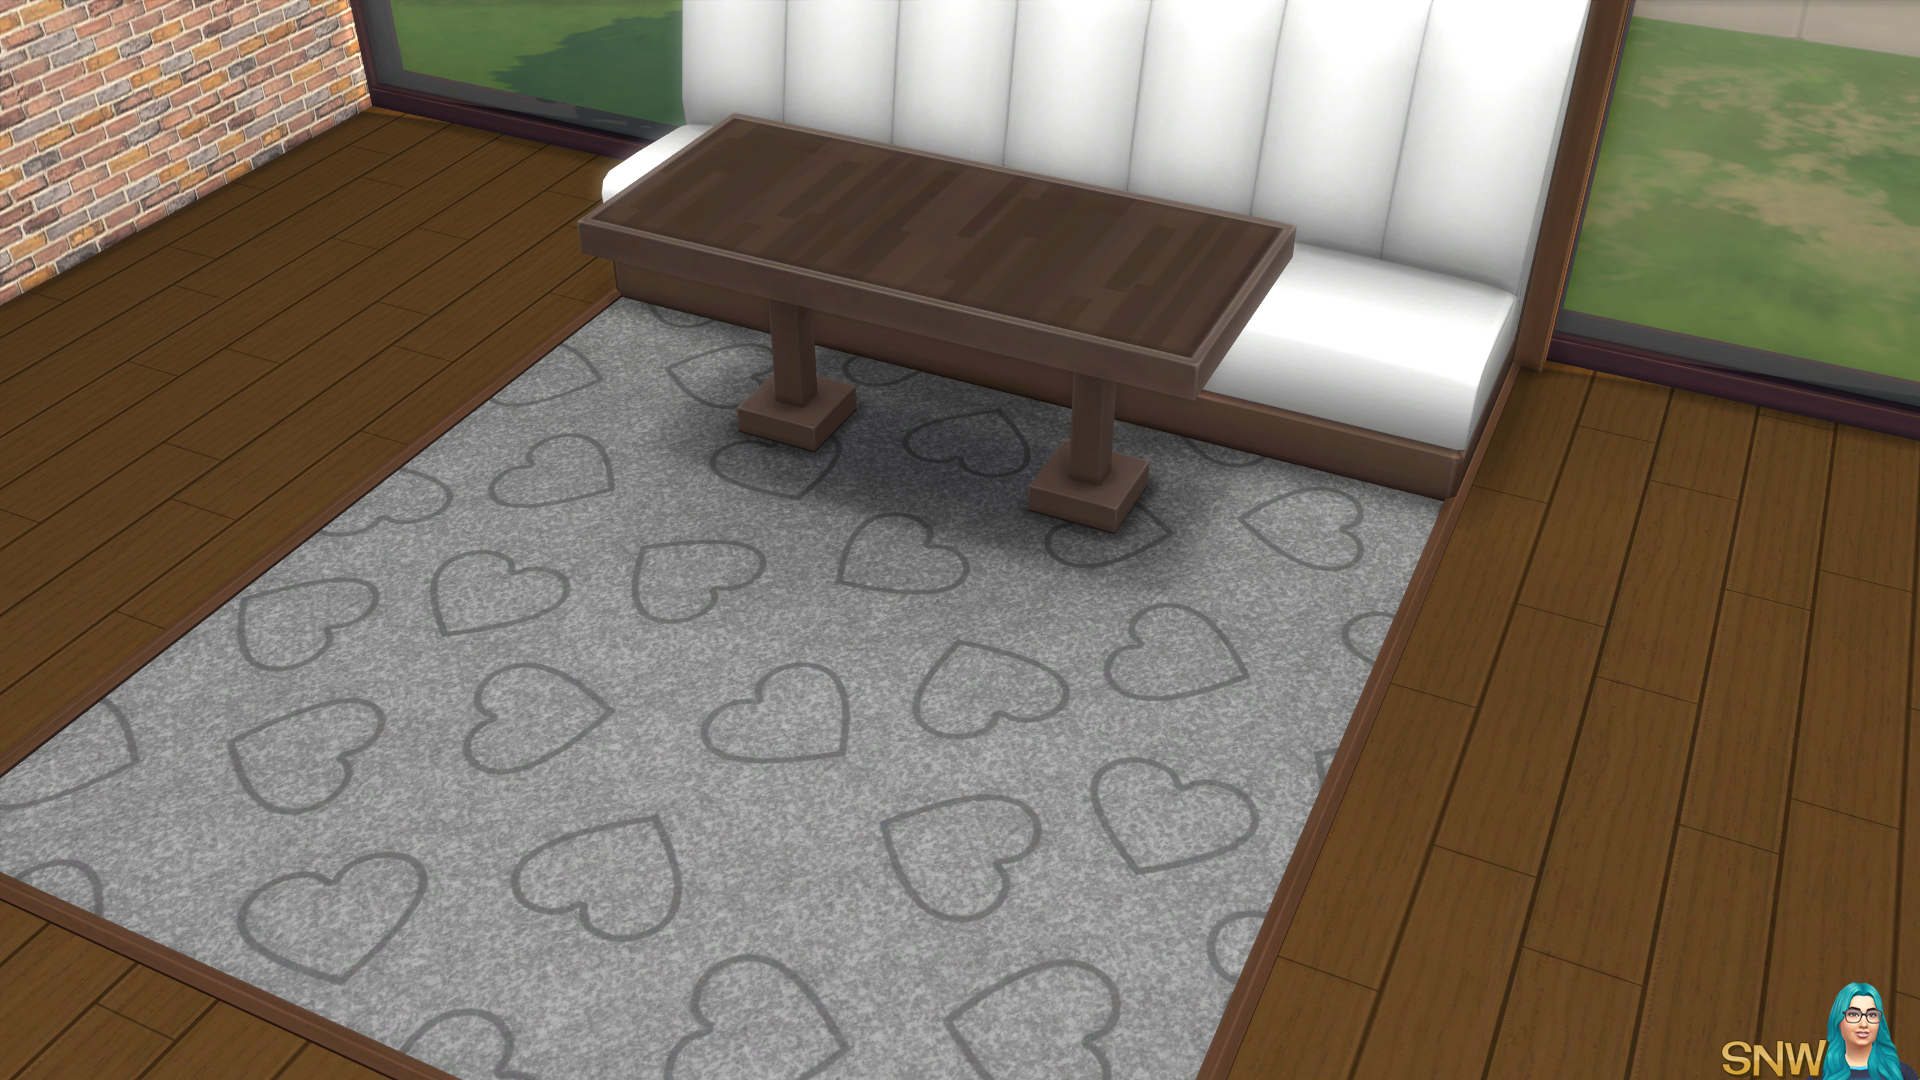 Valentine's Day 2018 / Love Carpets #5 (Hearts - Outline - Large - Dark)